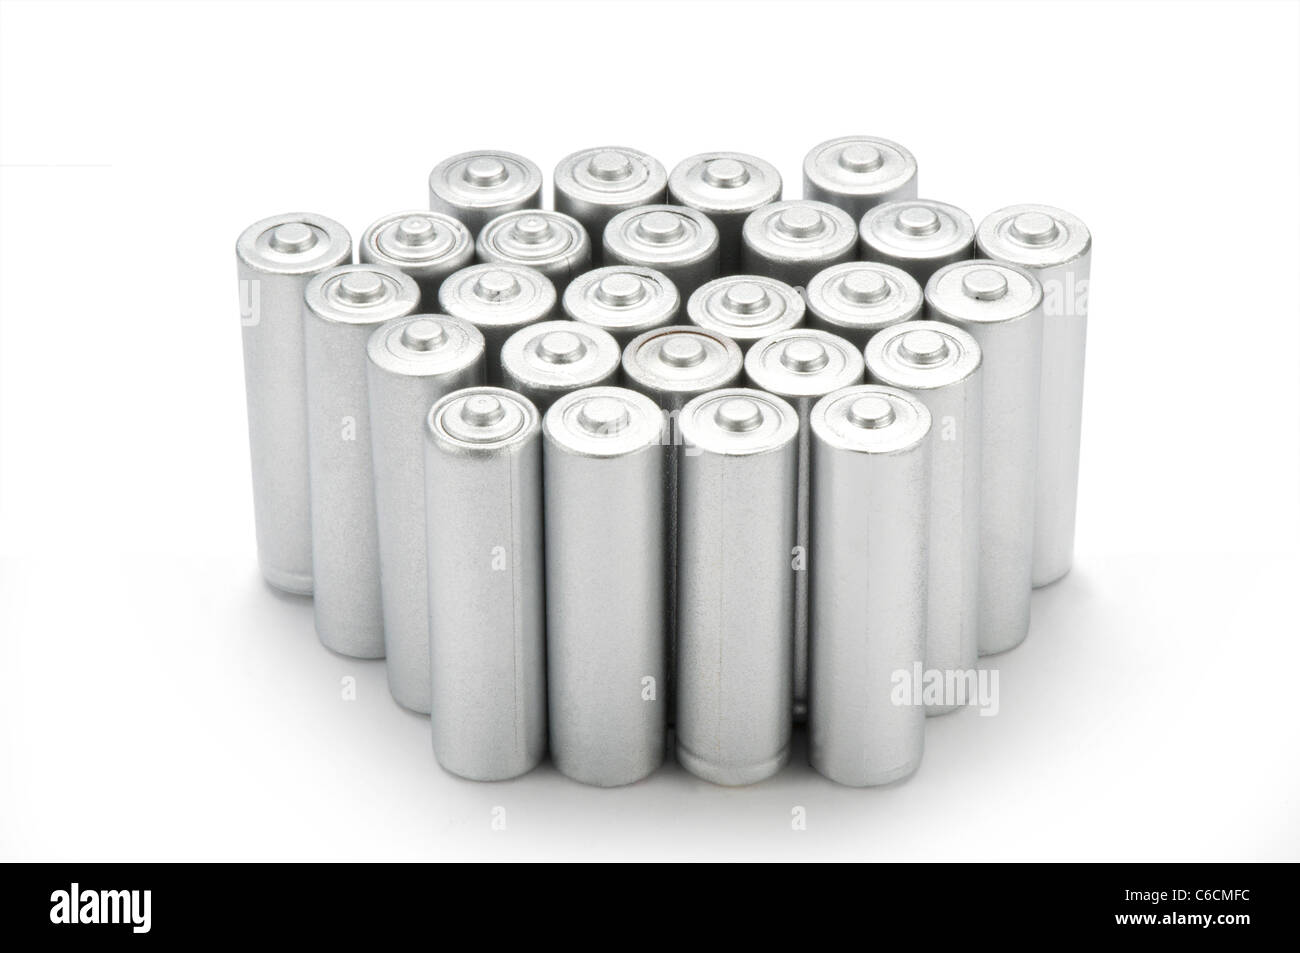 Double A batteries on white - Stock Image